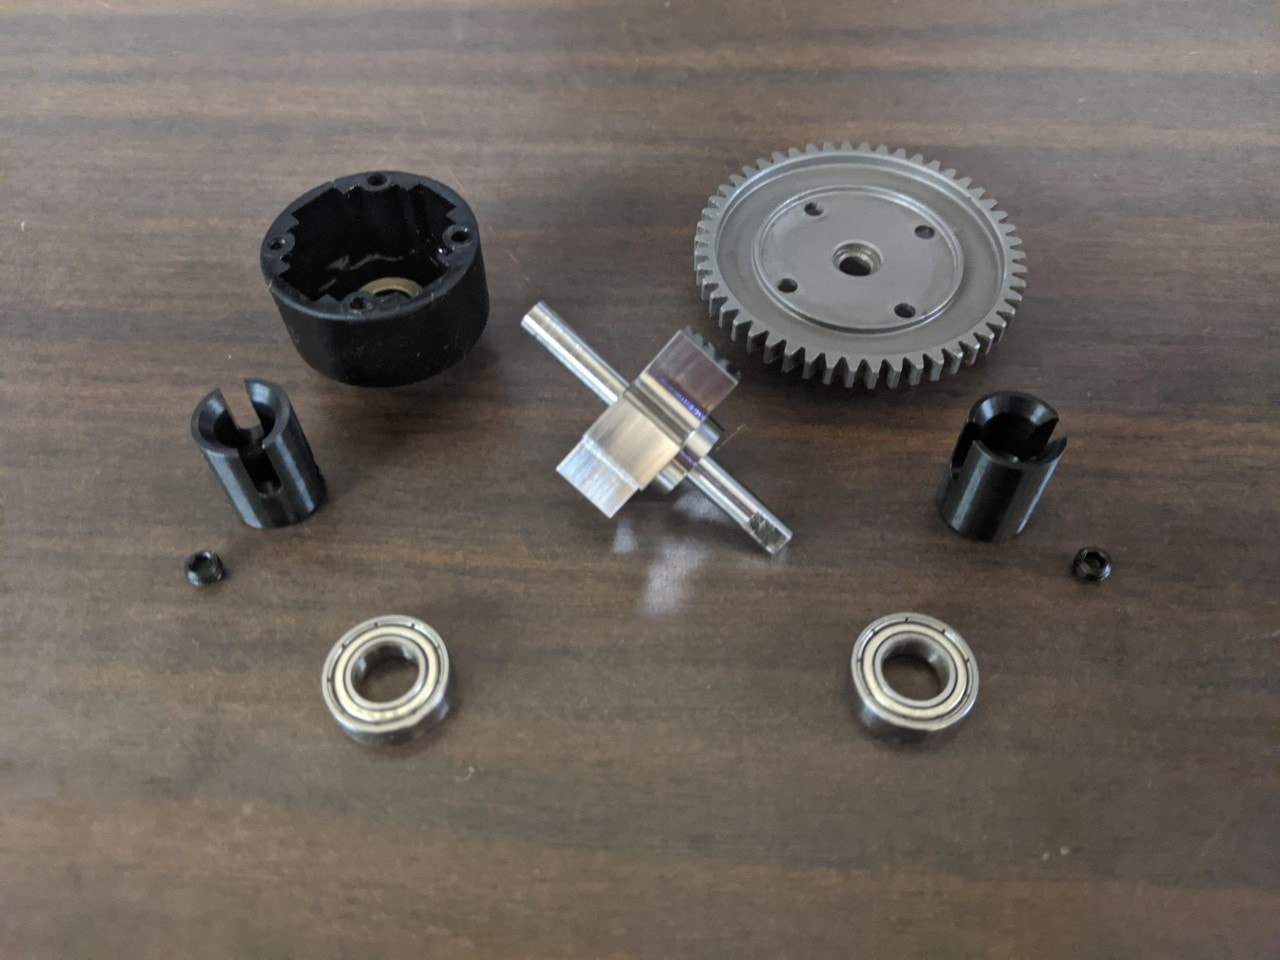 JJ Customs, LLC Releases the JJ Locked Differential Spool for ARRMA 6S BLX Models